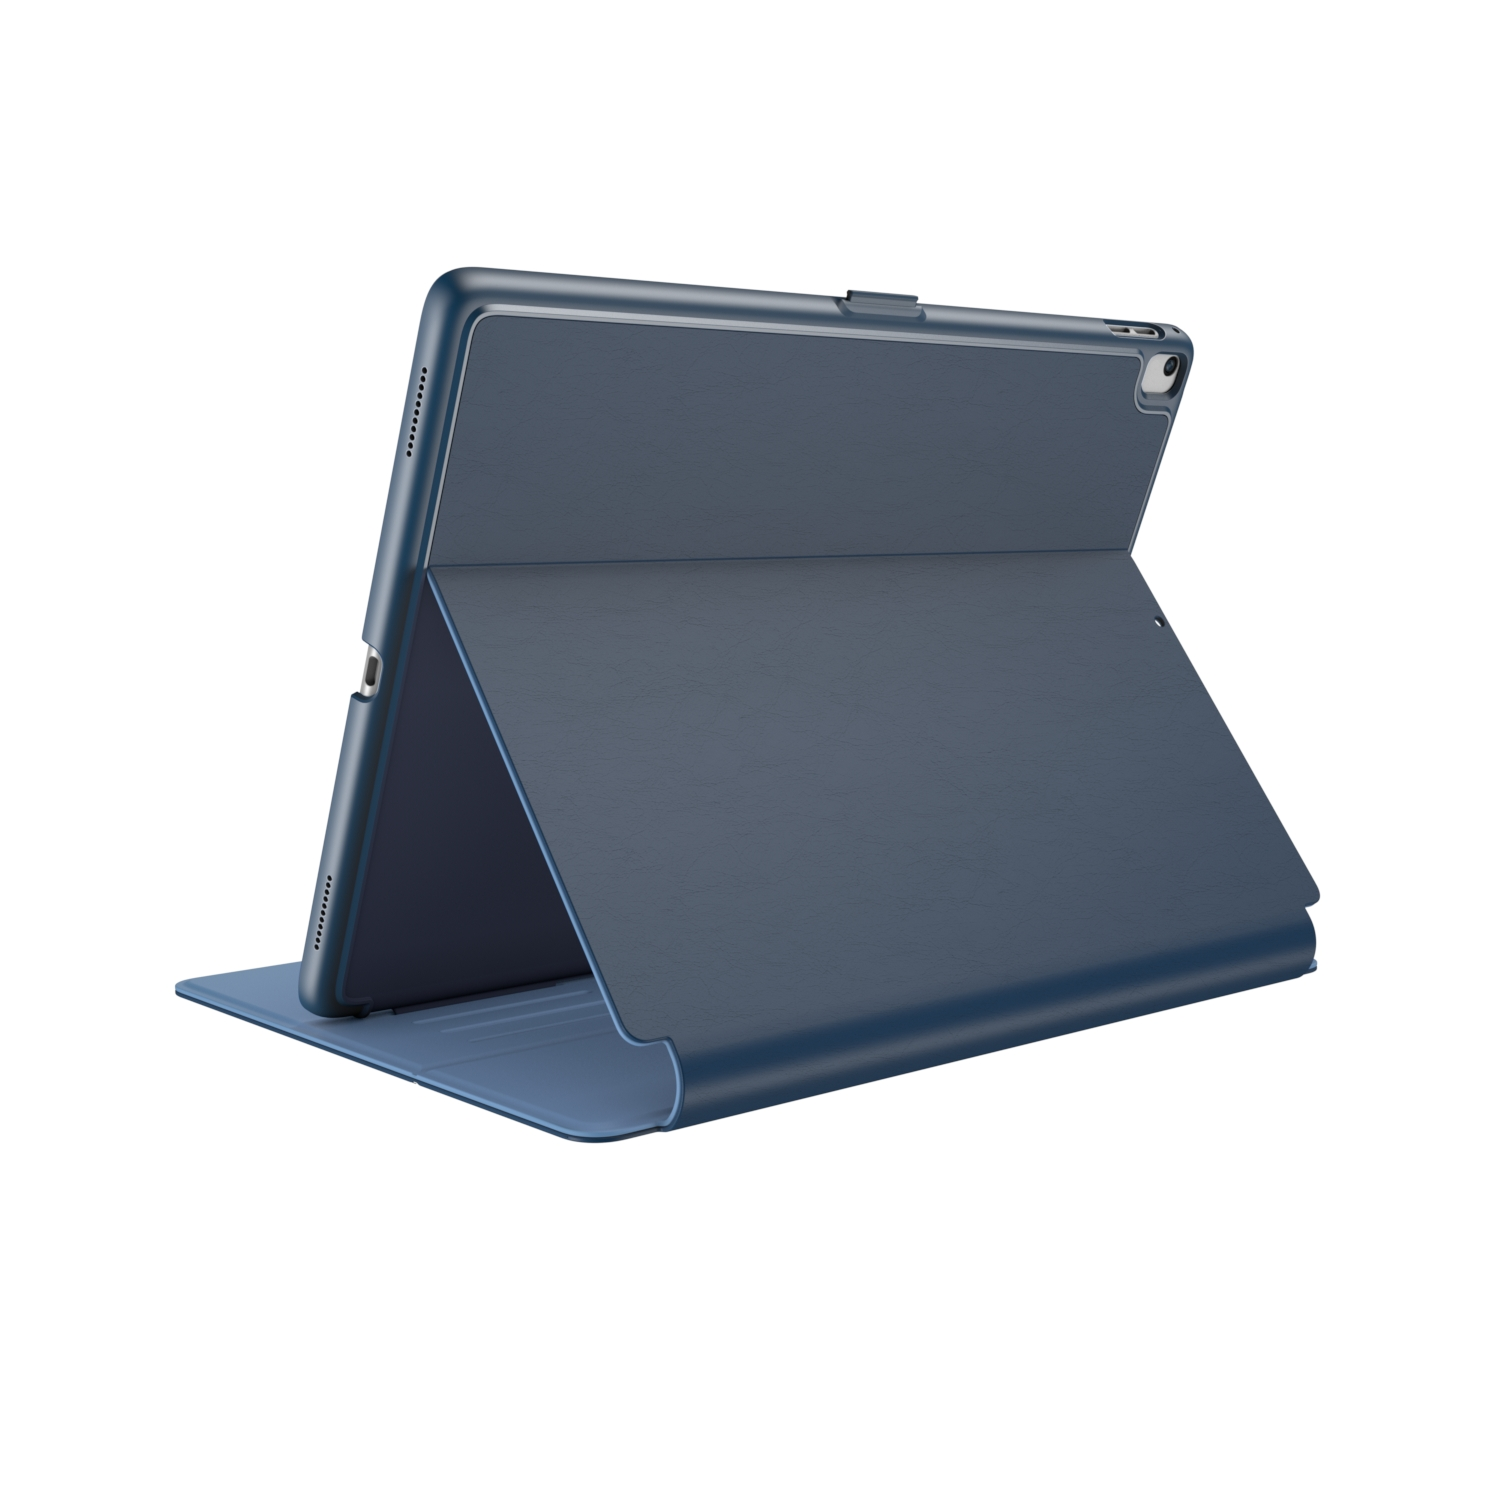 Compare prices for Speck Balance FOLIO 9.7 inch iPad Cases 2017 Marine Blue/Twilight Blue